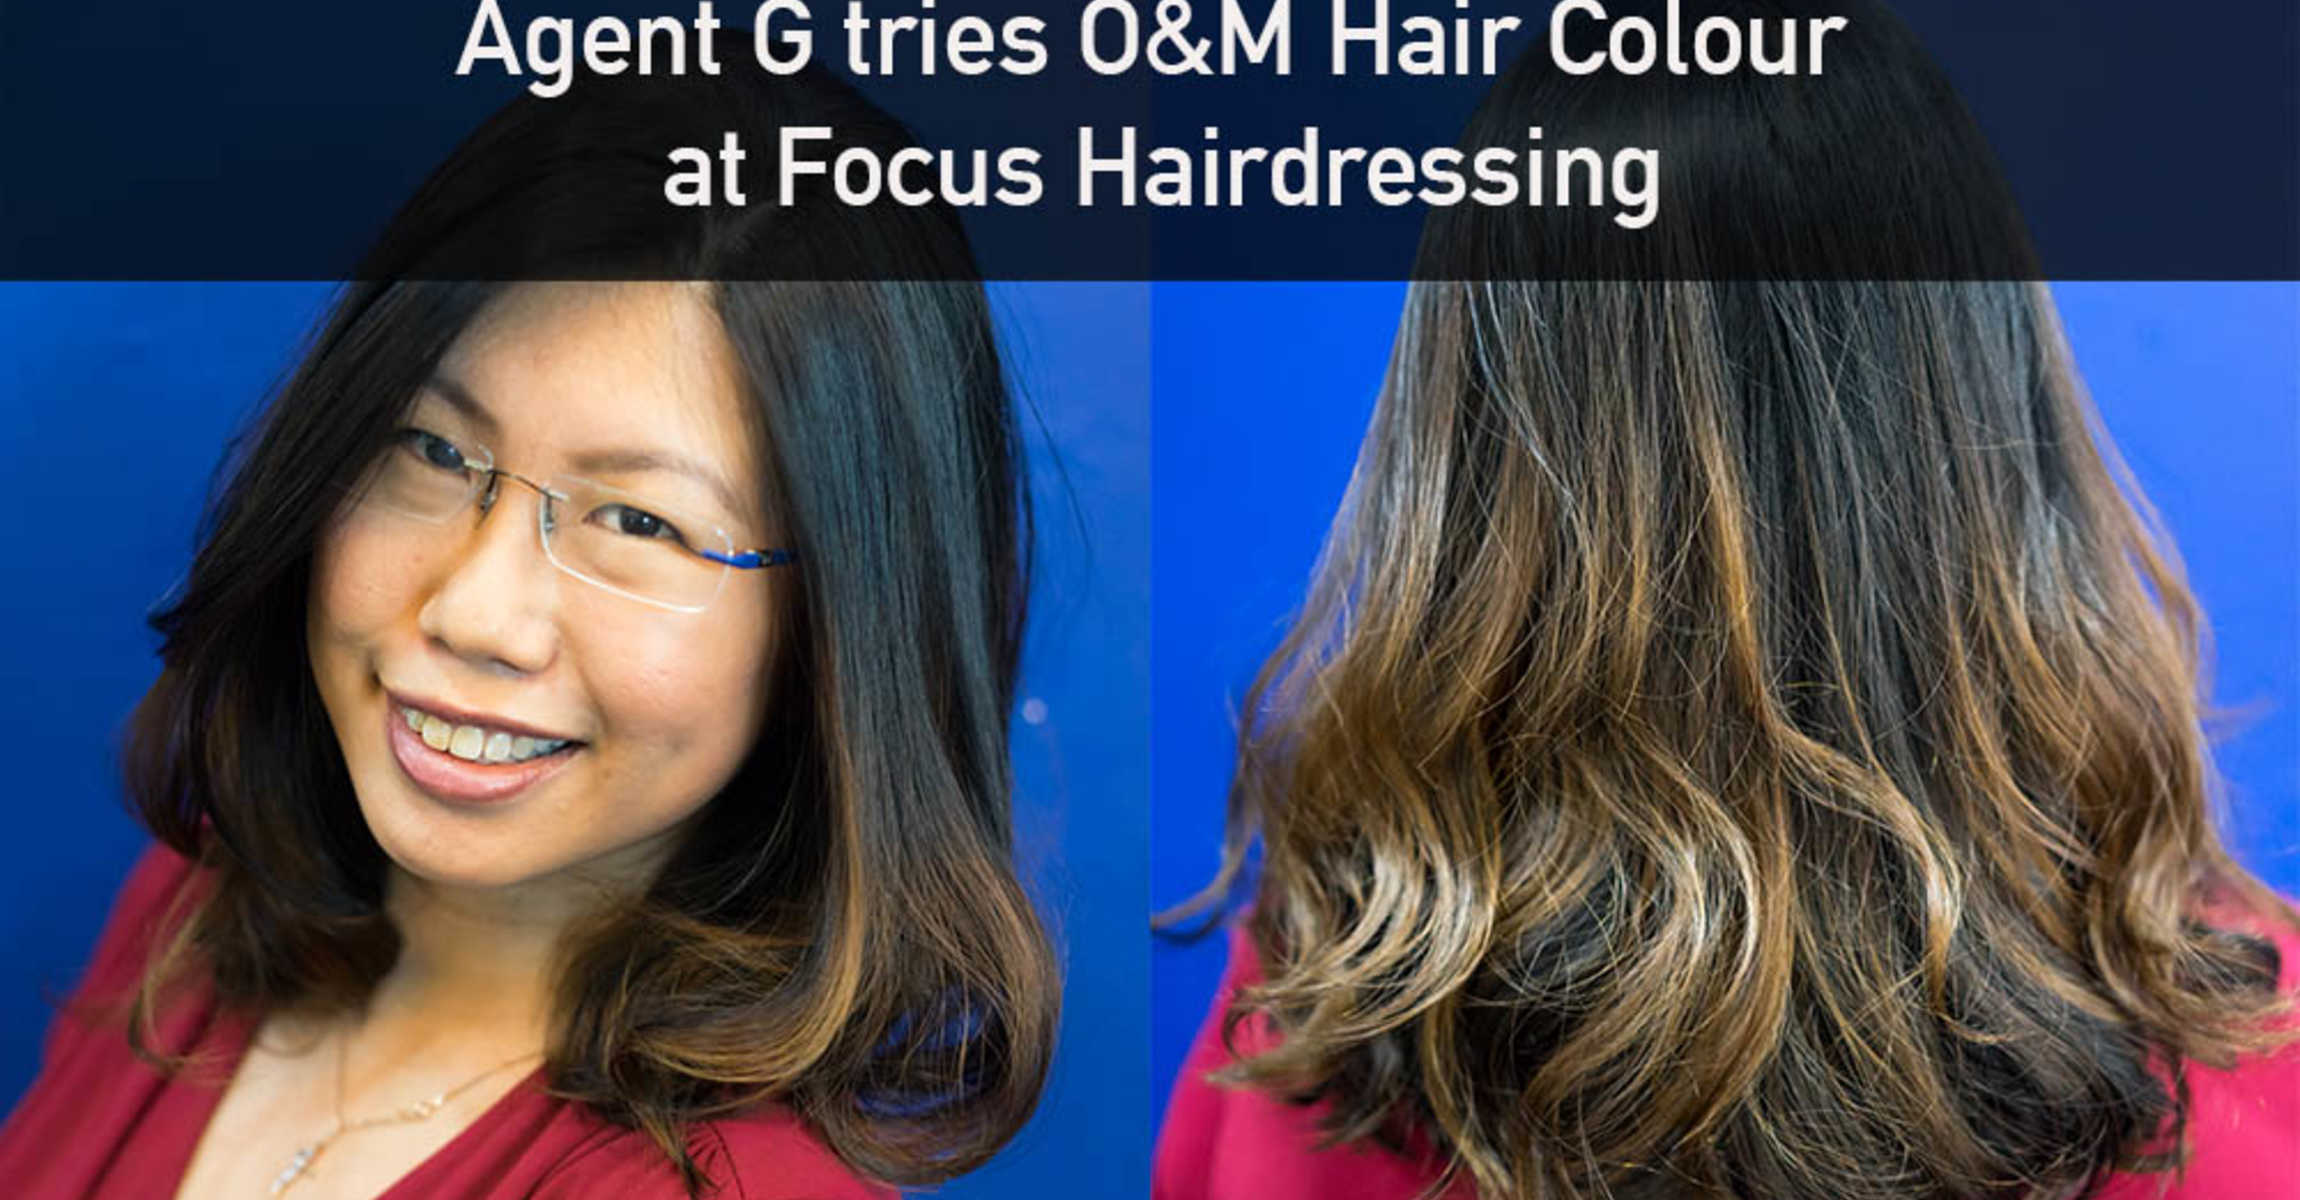 Agent G tries Original & Minerals Hair Colour at Focus Hairdressing!